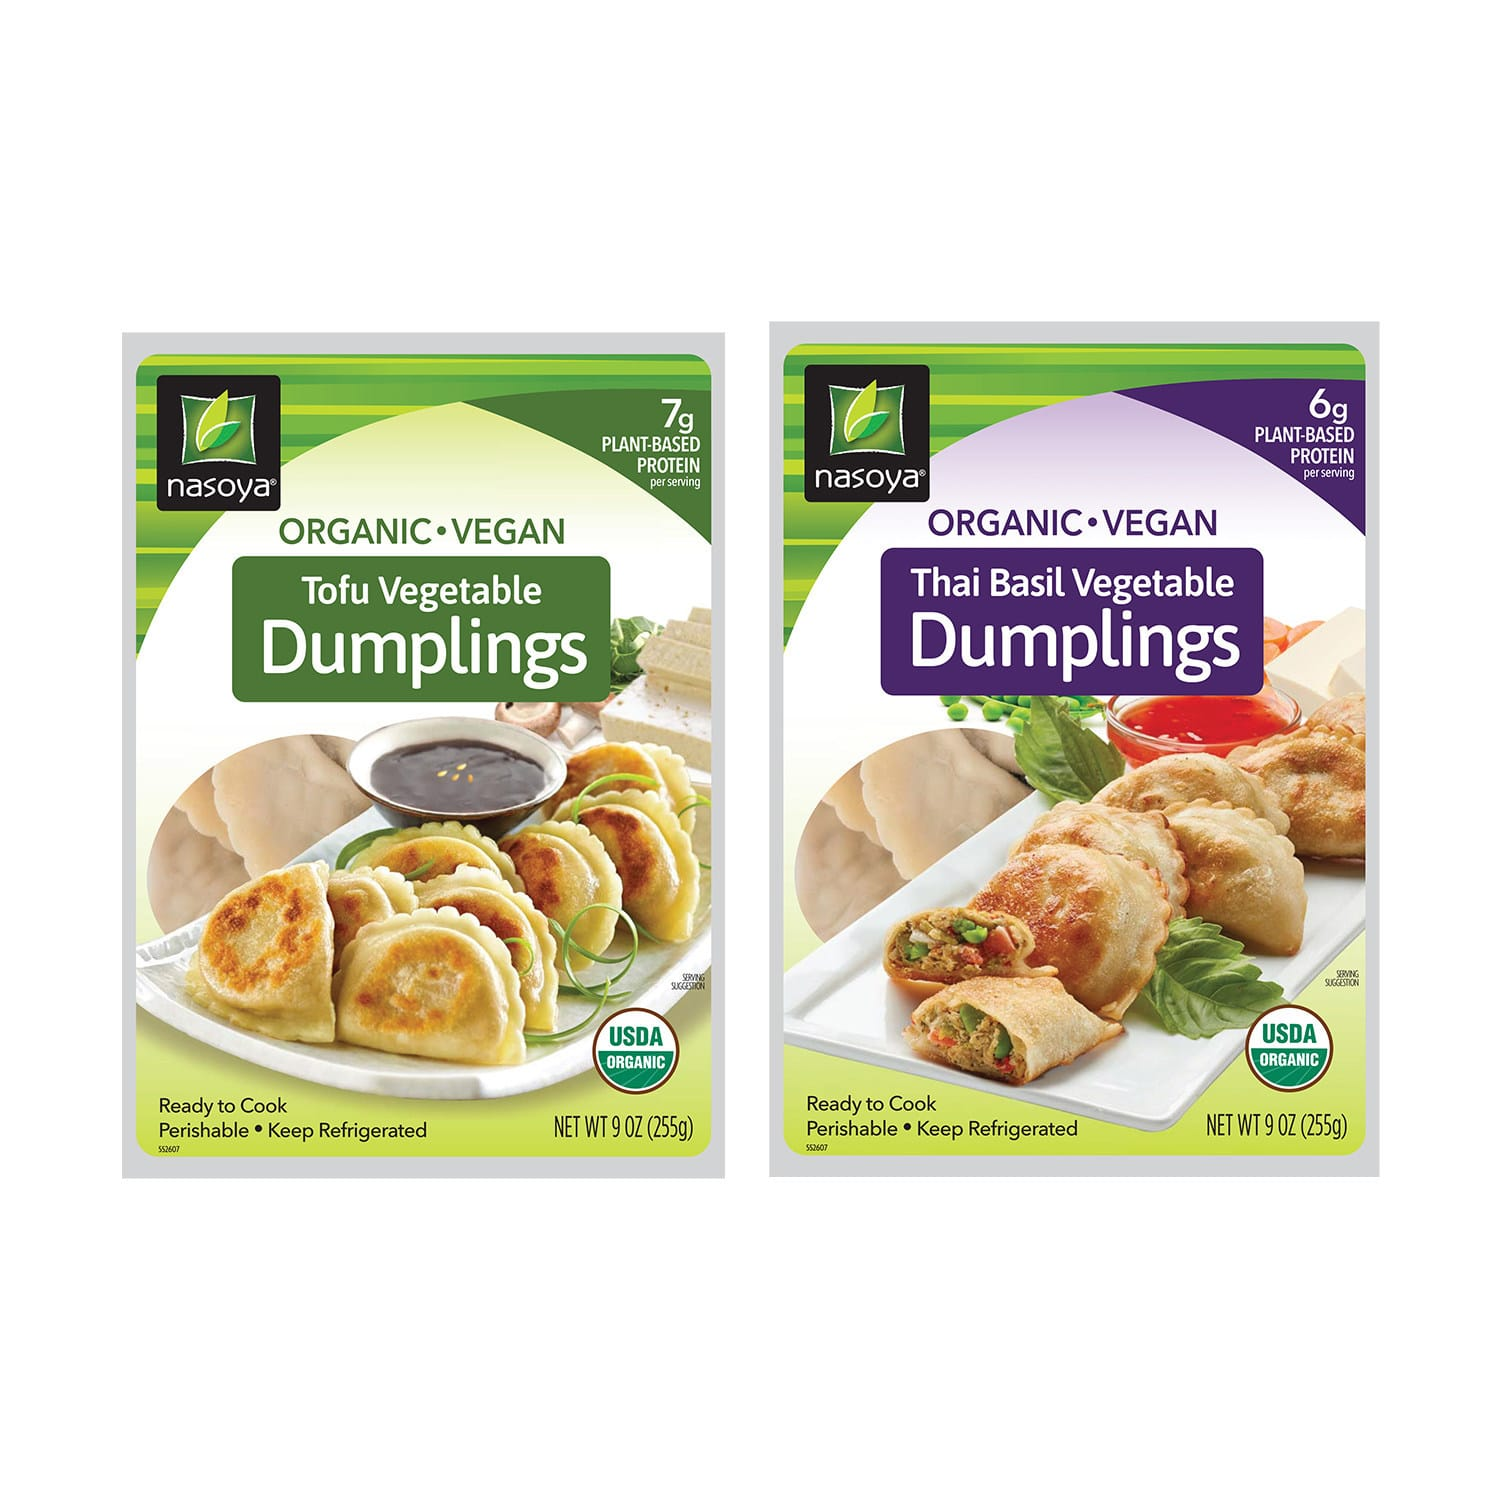 Nasoya Releases Vegan Tofu Vegetable and Thai Basil Vegetable Dumplings